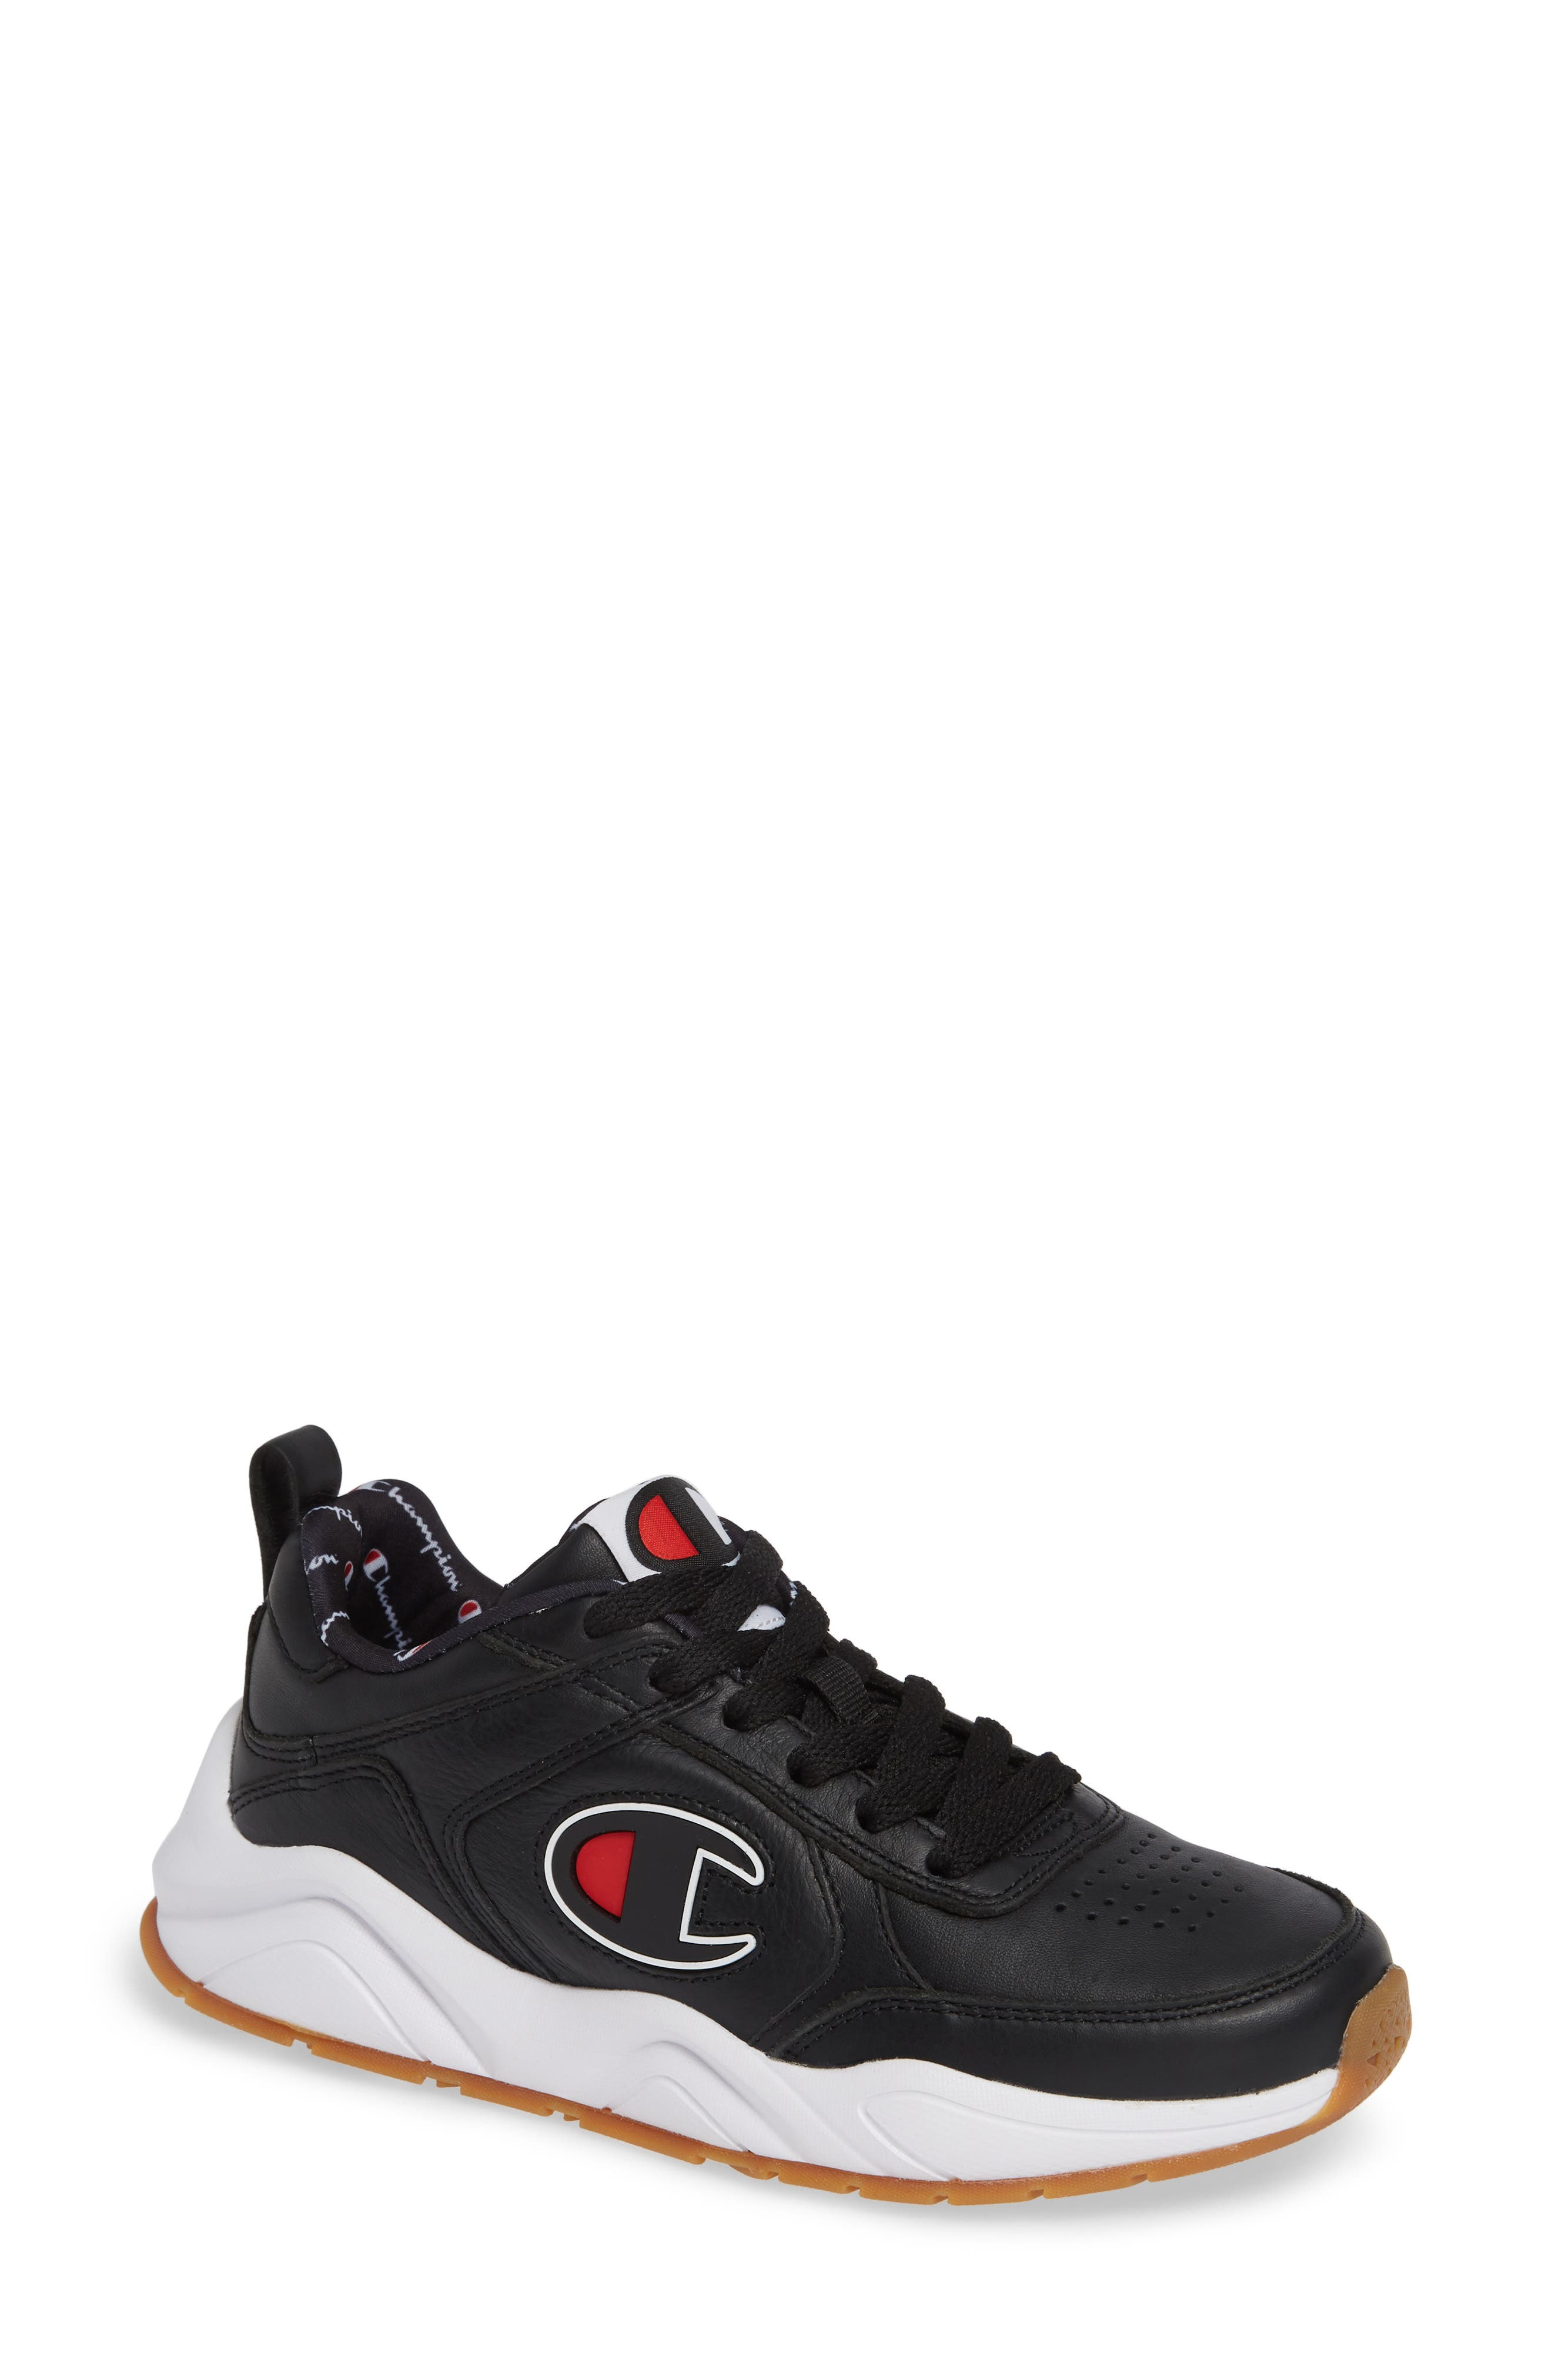 93 Eighteen Sneaker,                             Main thumbnail 1, color,                             BLACK